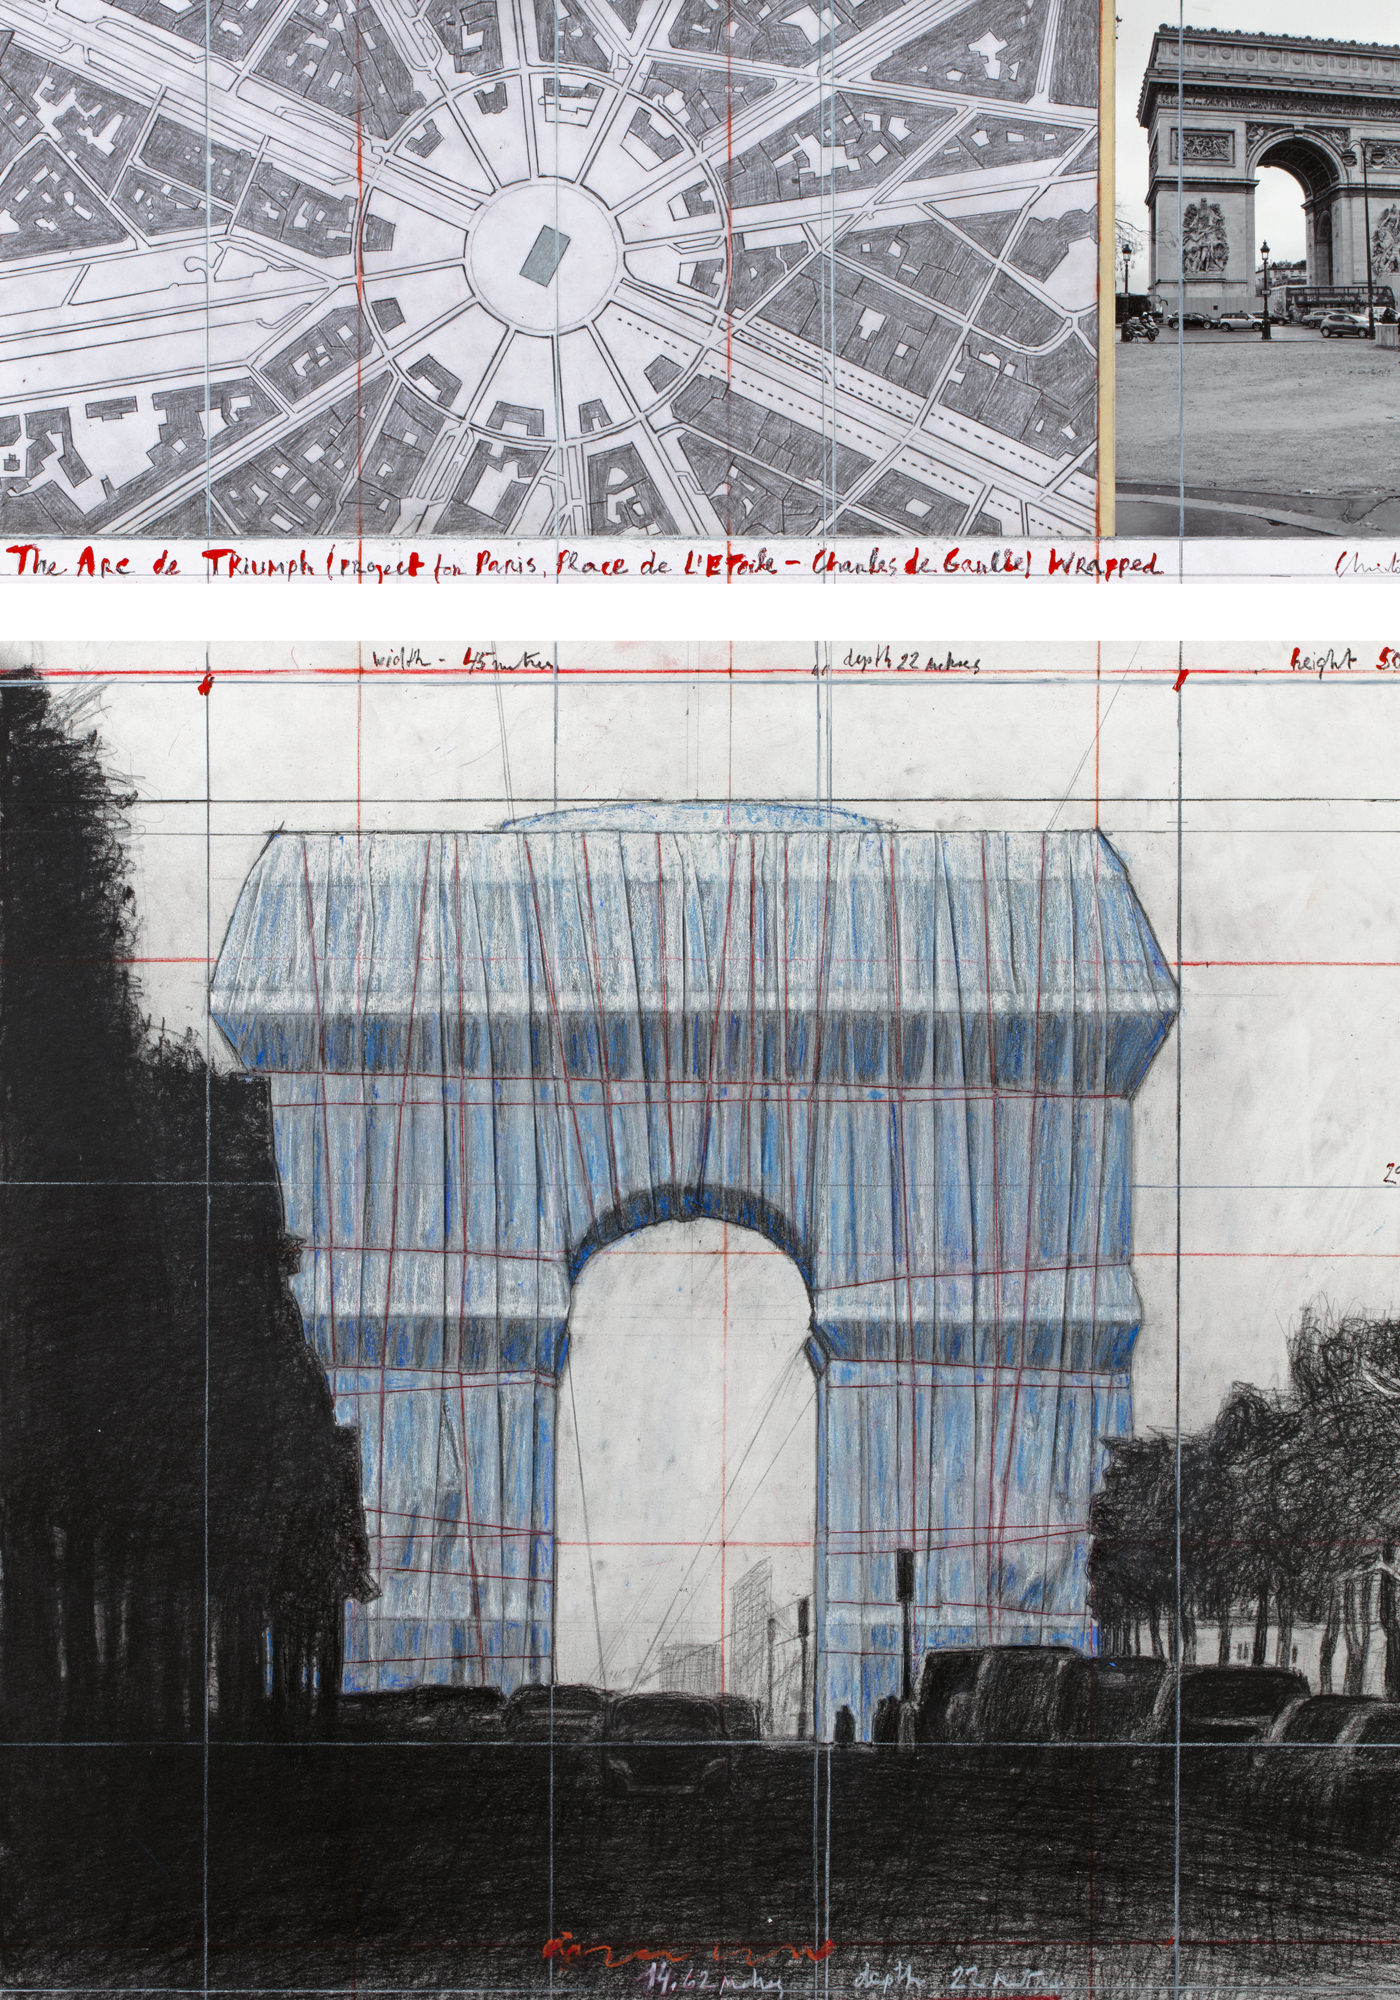 City Guide Paris Christo Arc de Triomphe Land Art 2021